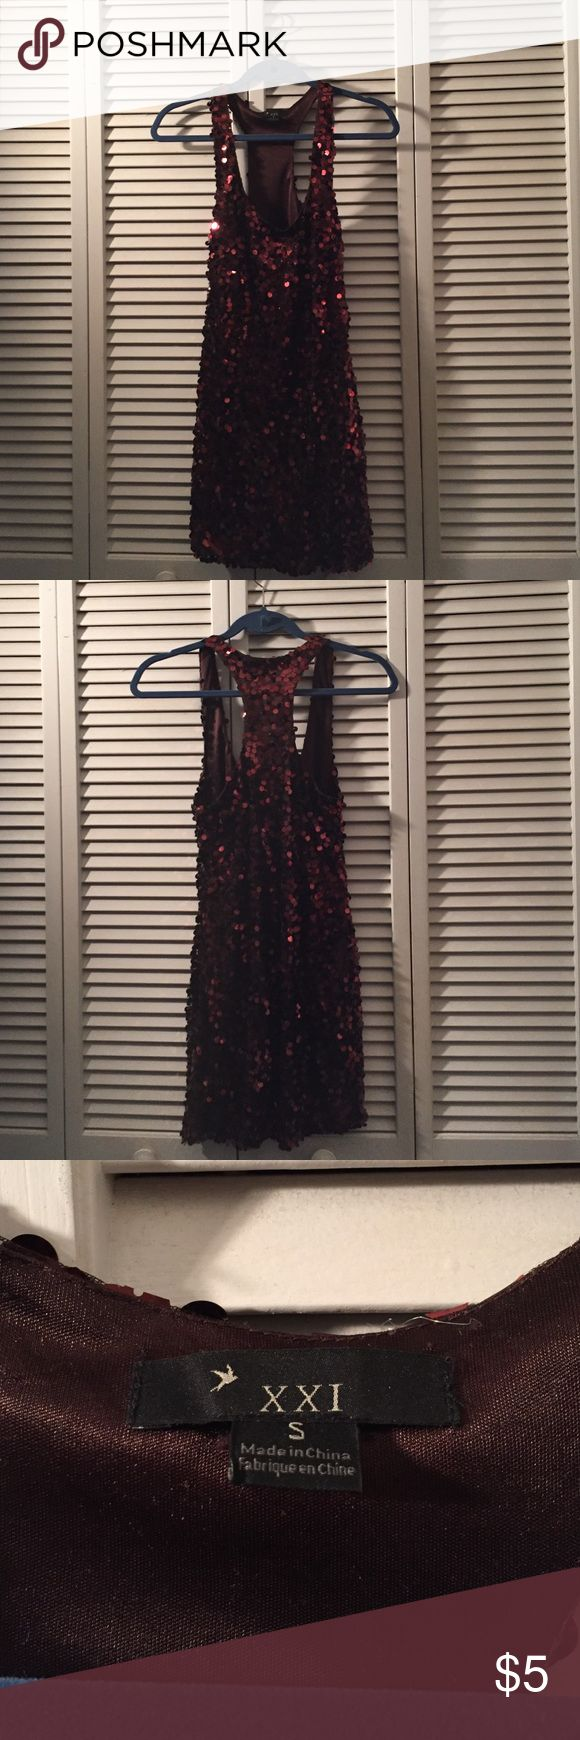 Sequin Forever 21 party dress Sequin Forever 21 party dress! Great for a night out only worn once and in perfect condition! Available in size small Forever 21 Dresses Mini